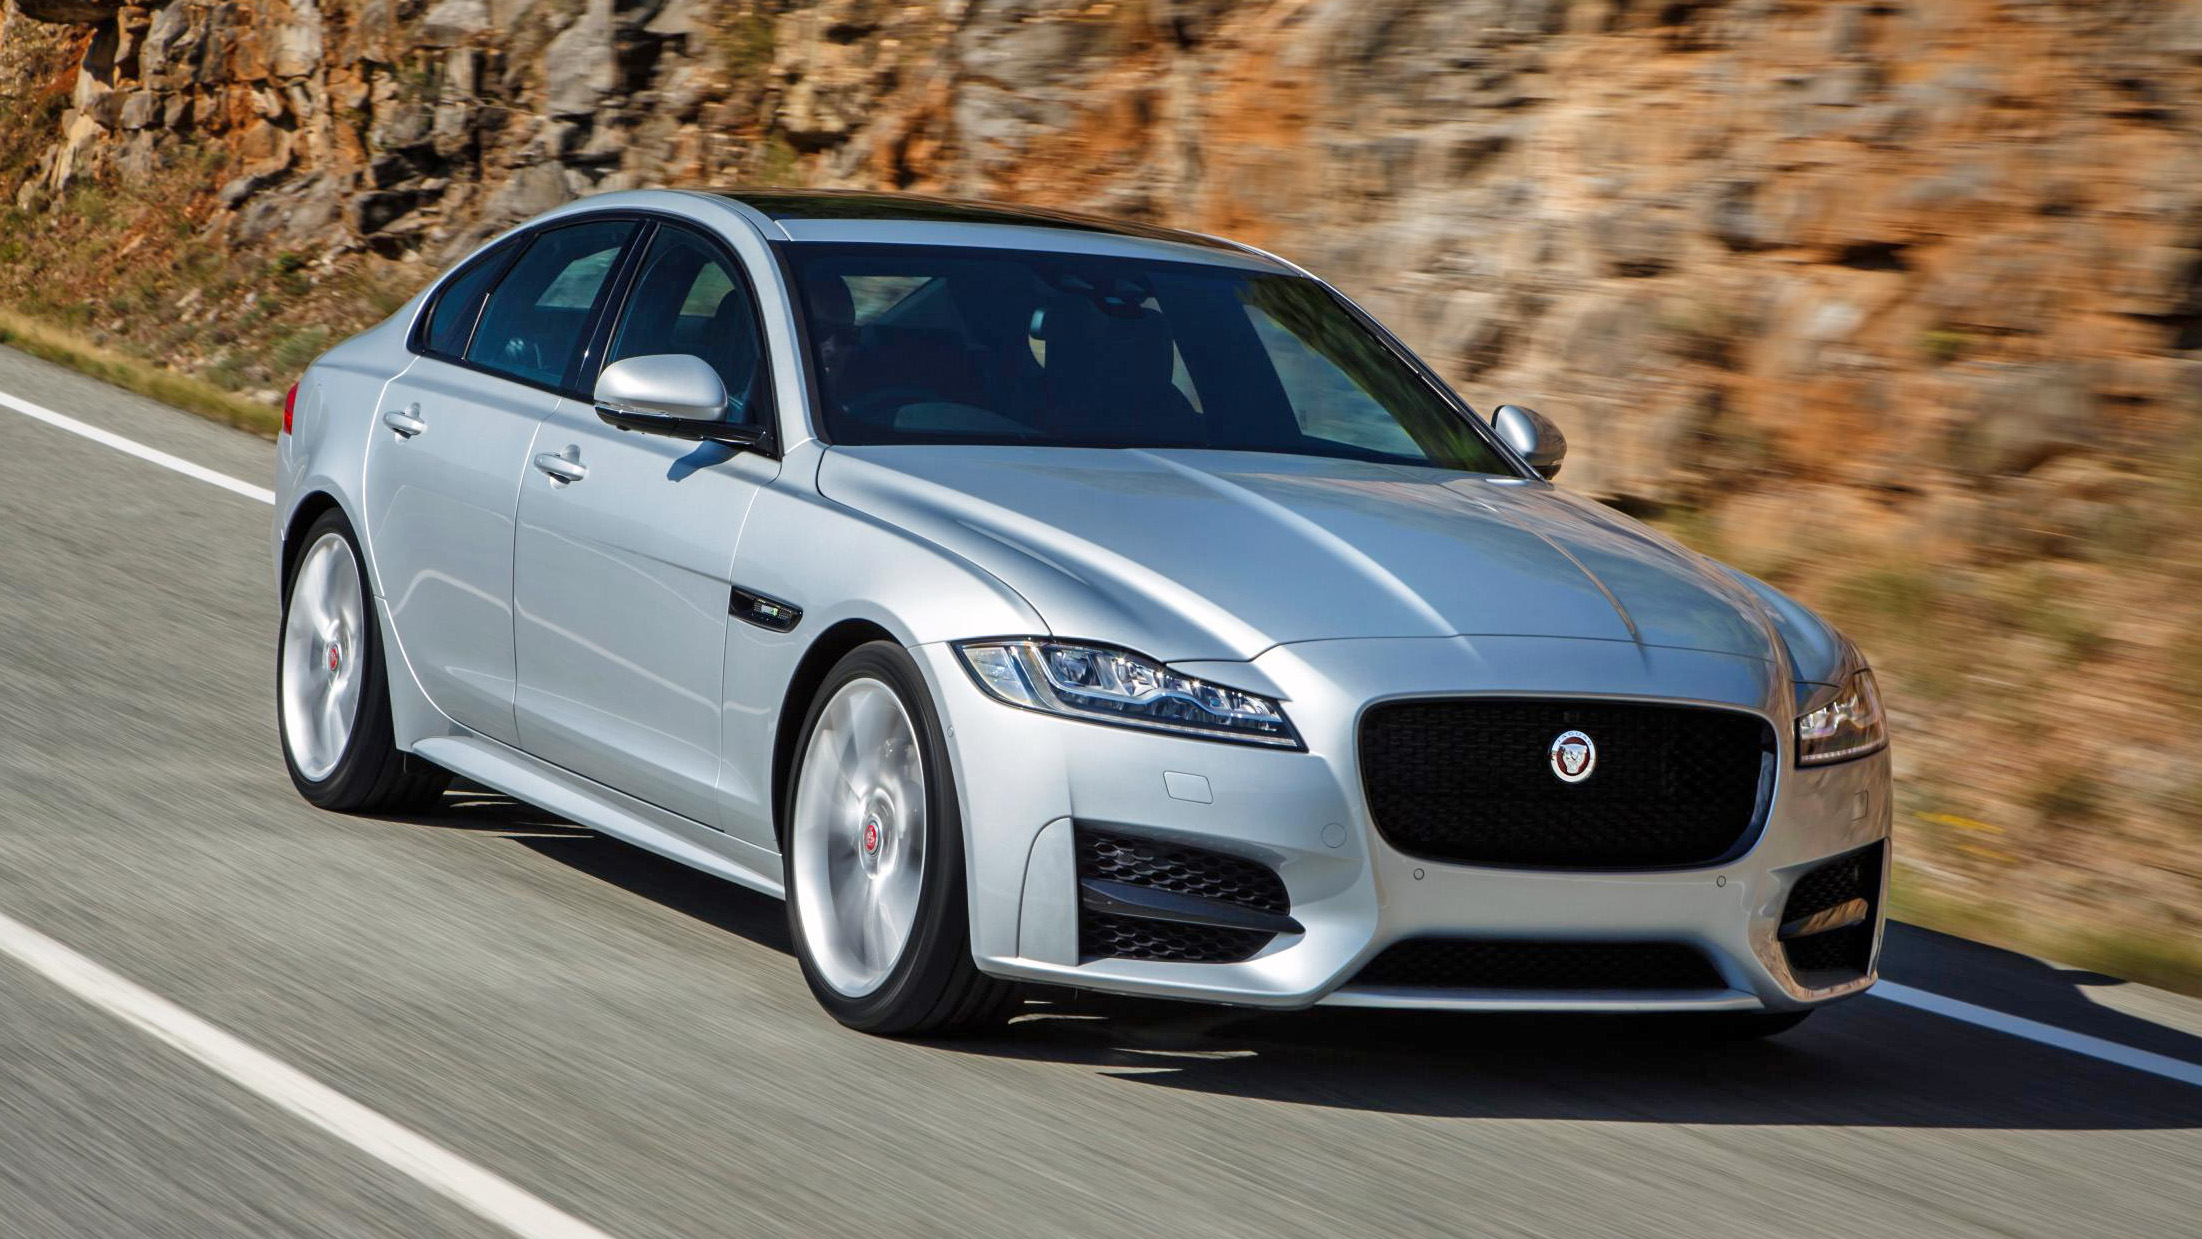 Jaguar XF all-wheel drive review: worth the extra? | Top Gear